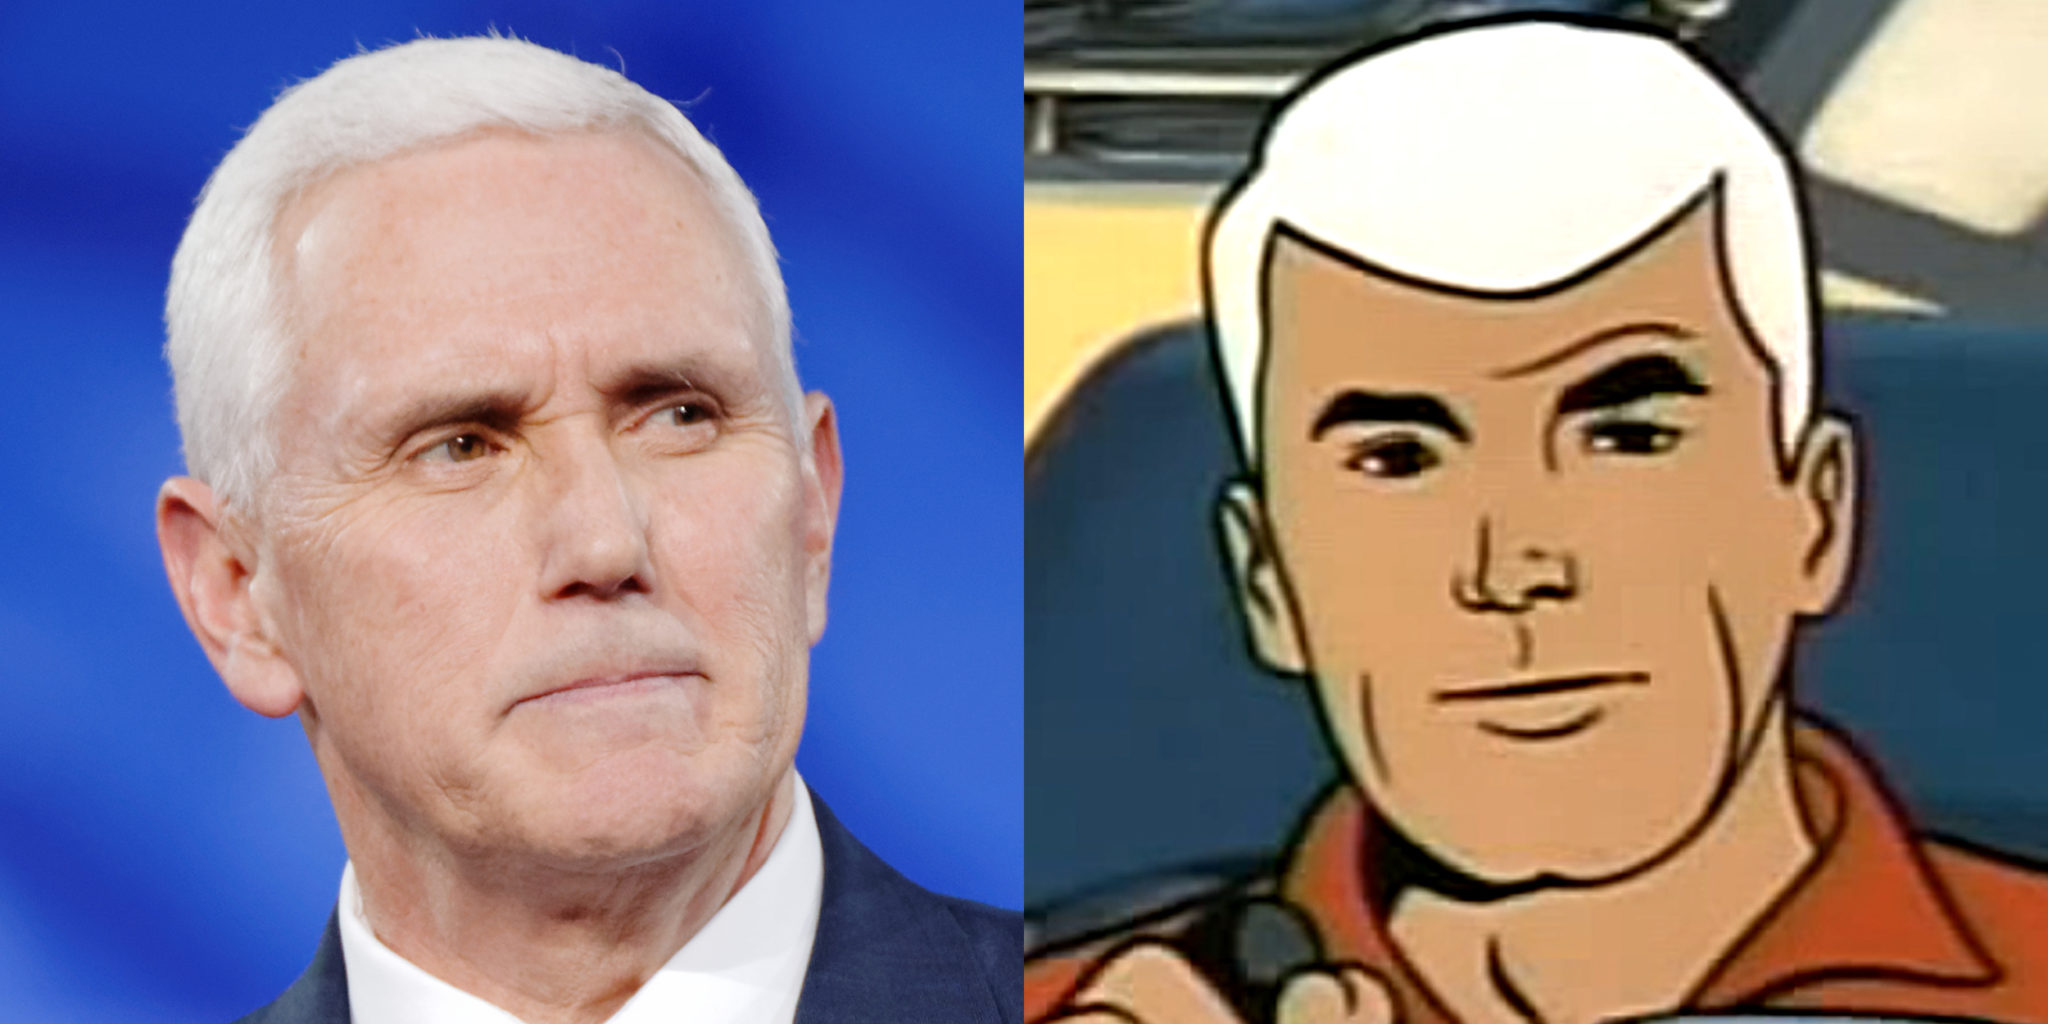 Is Mike Pence really